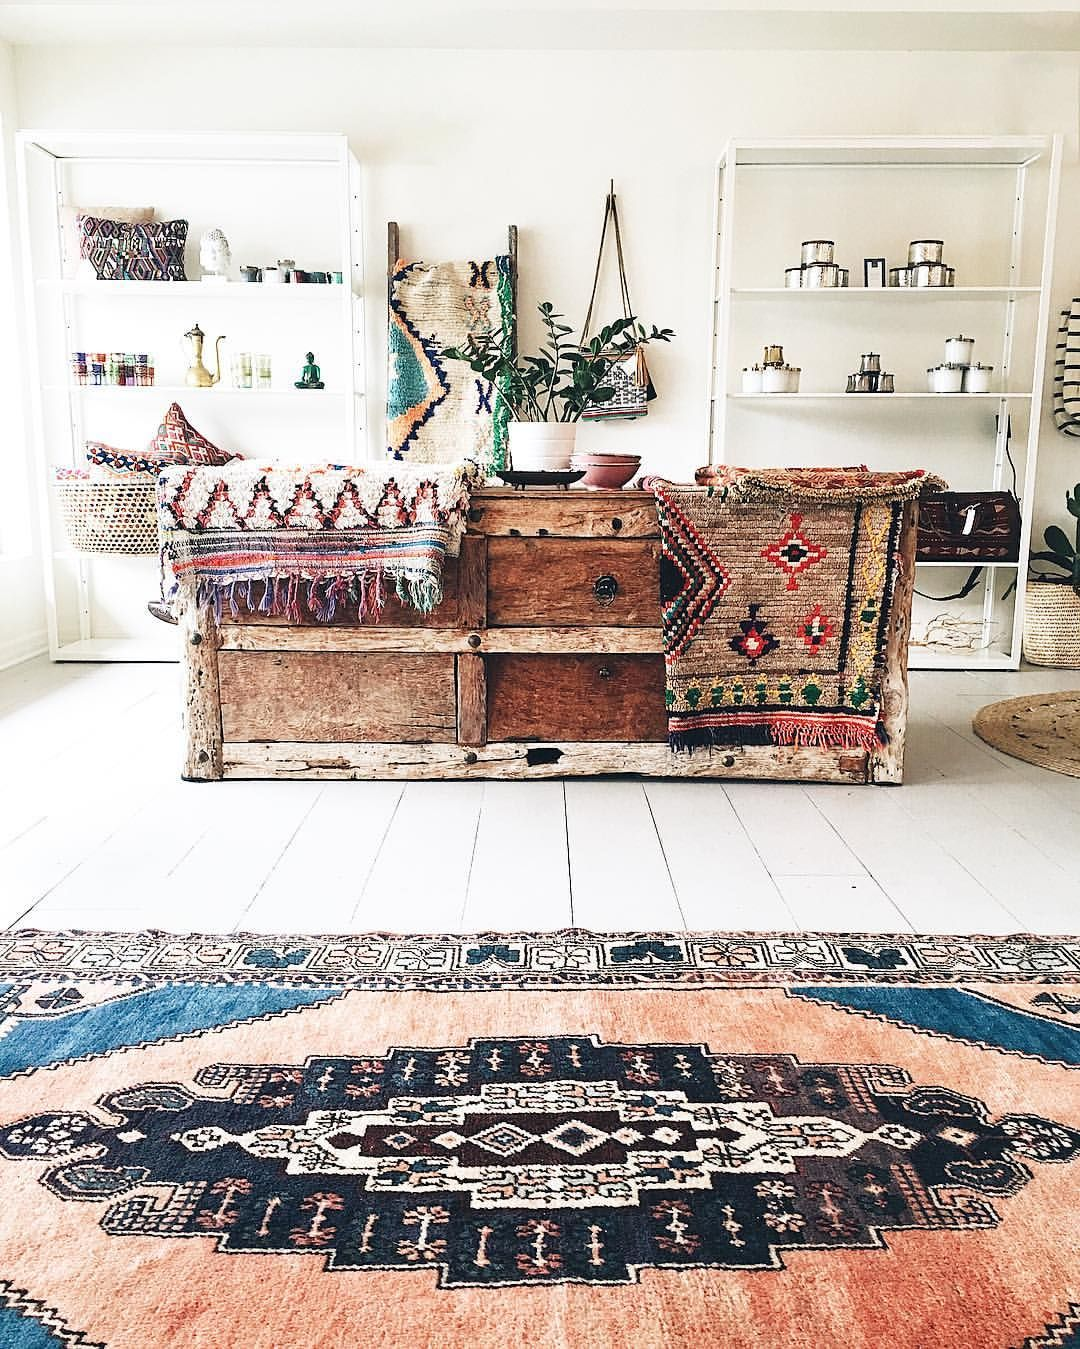 The Decorating Store: Green Body + Green Home Retail Store Display Bohemian